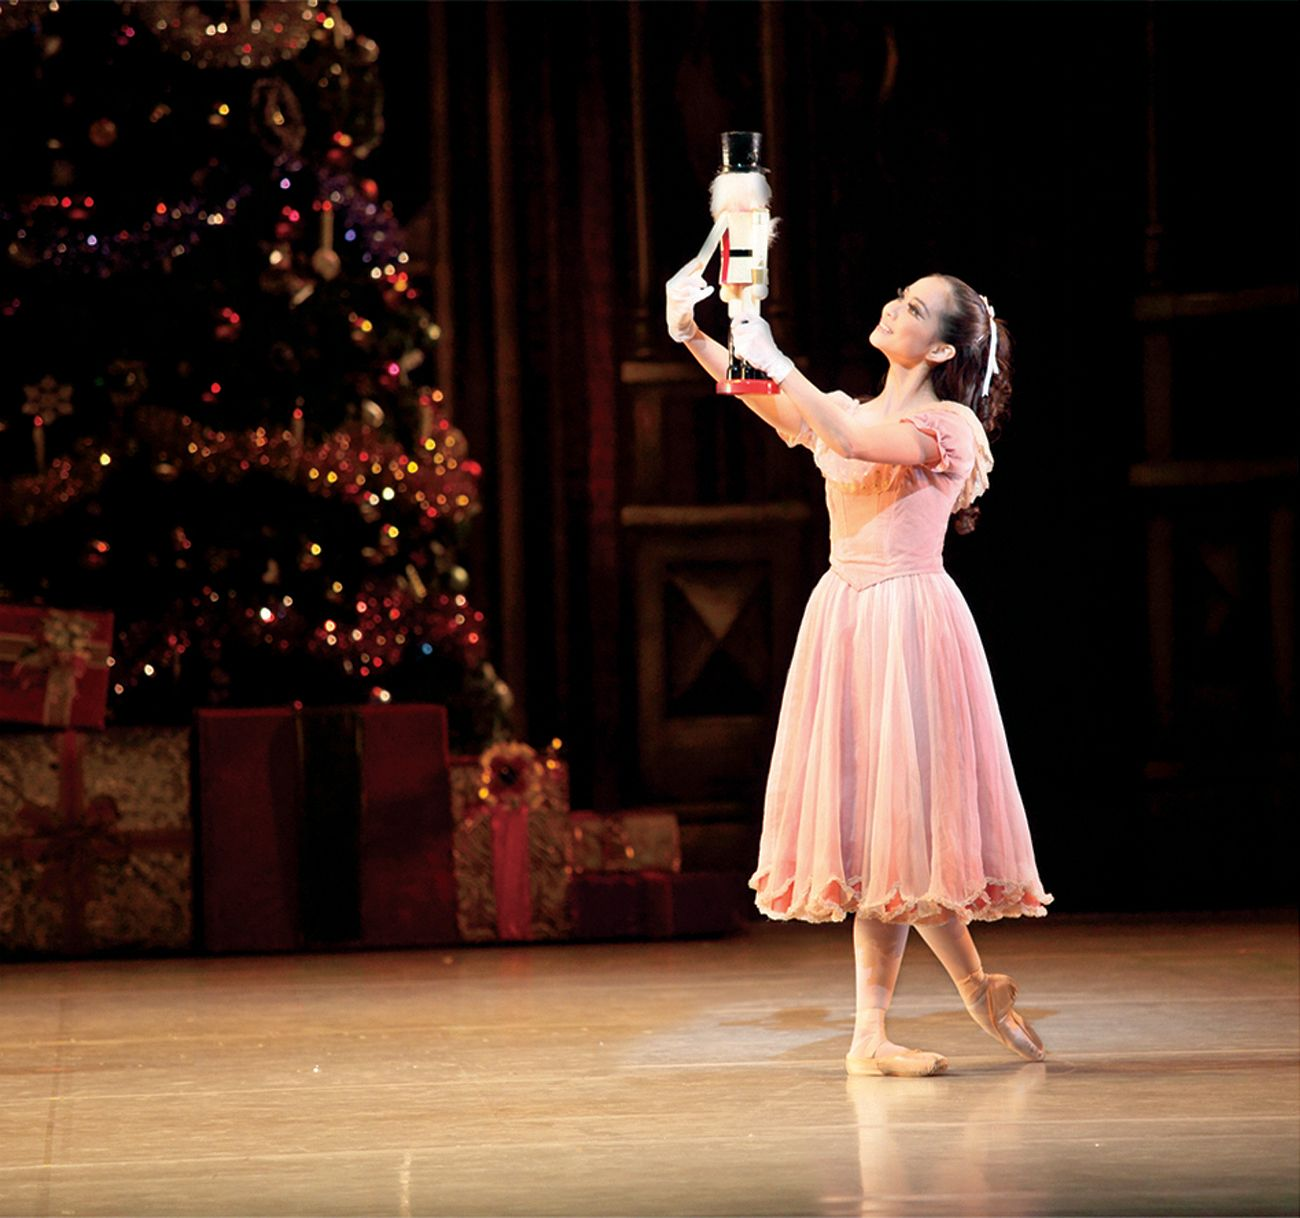 The Nutcracker. The Christmas season is not complete if I ...